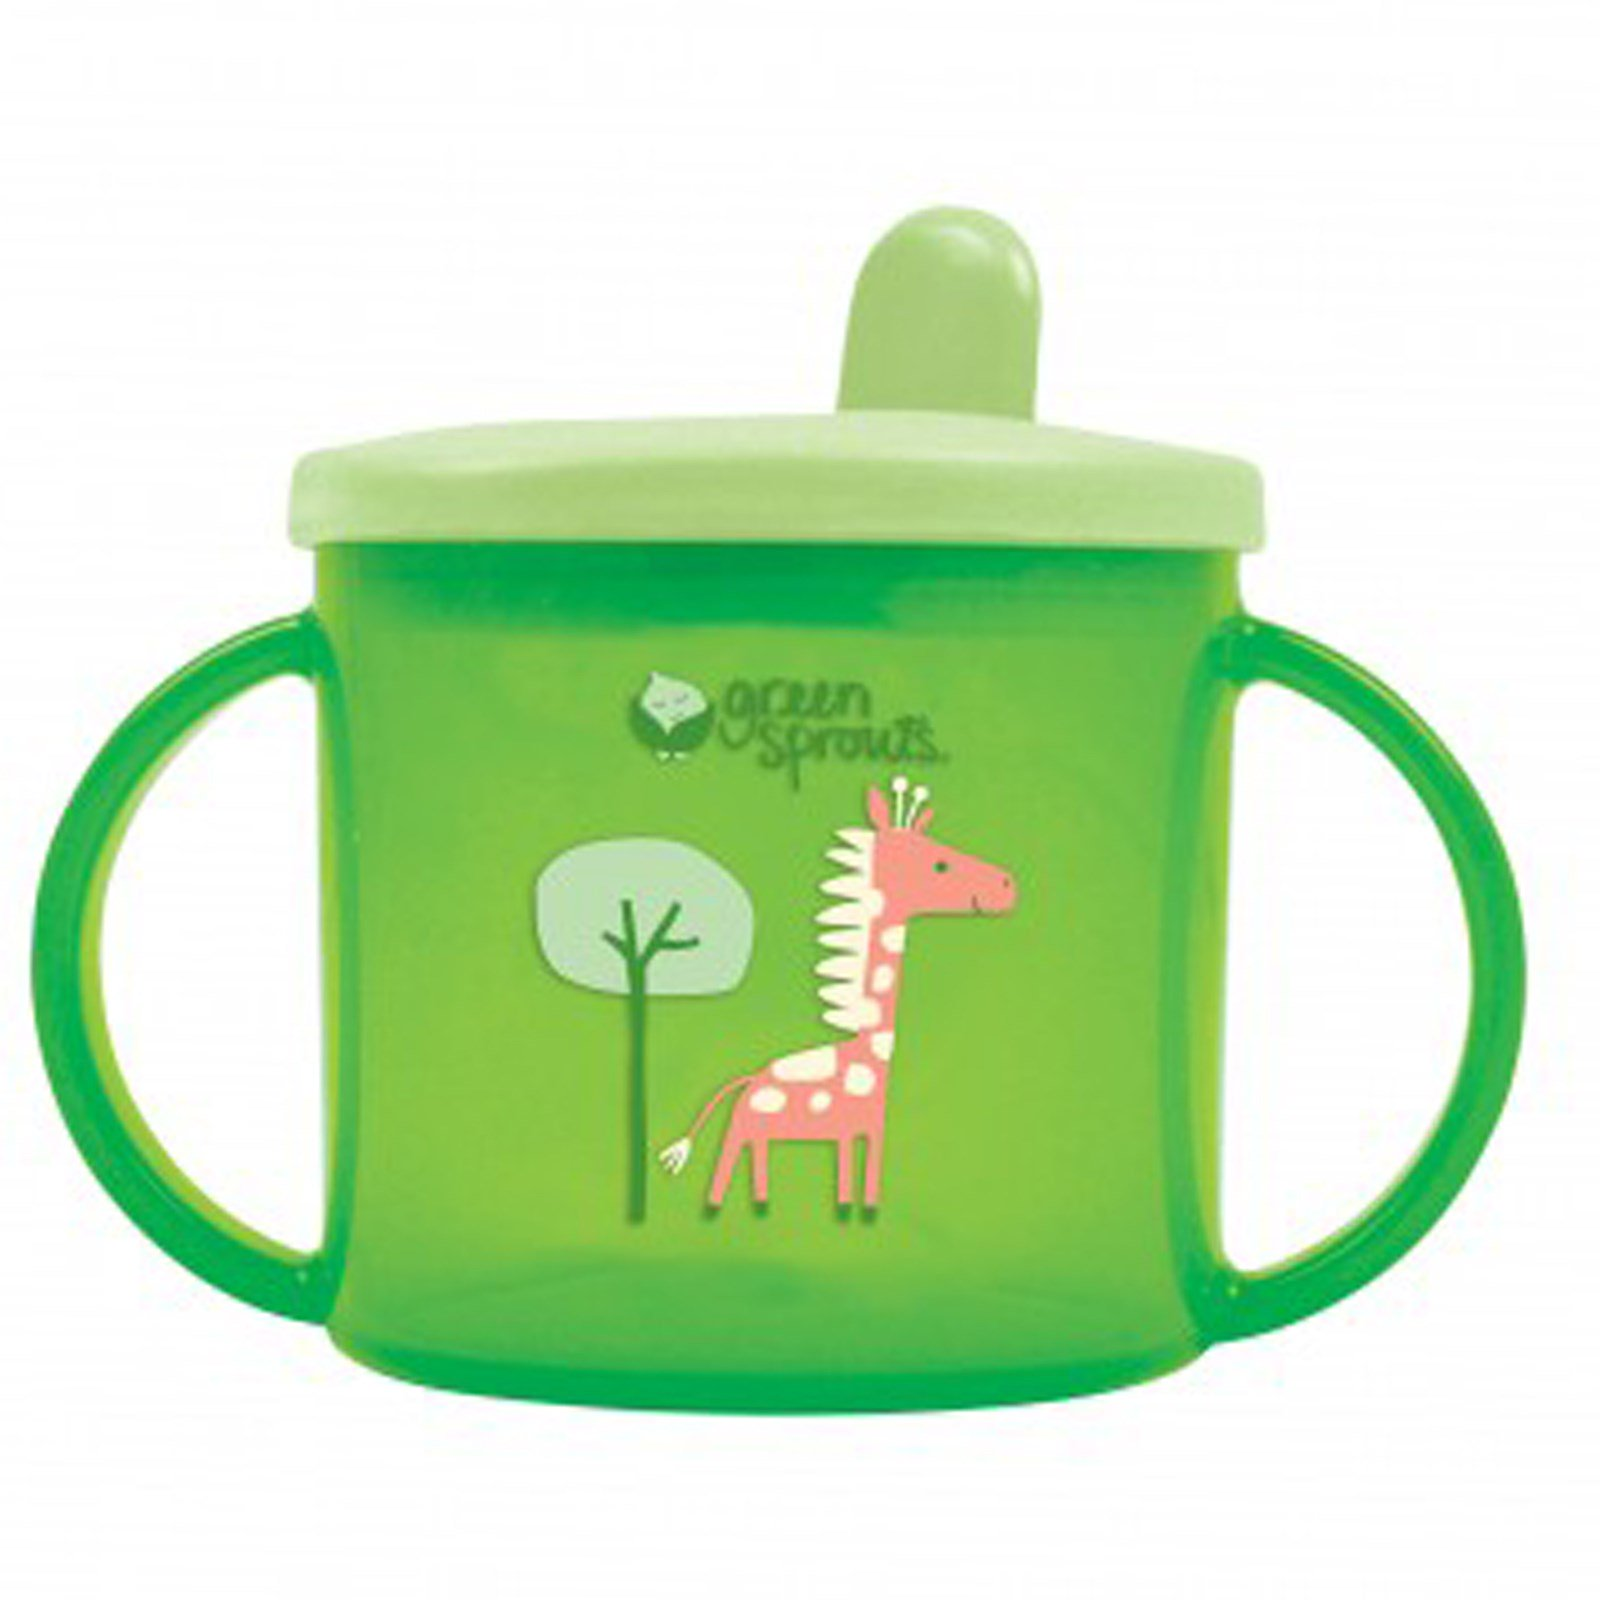 Iplay Inc Green Sprouts Sippy Cup 3 12 Months Stage 2 Boon Tall 10oz